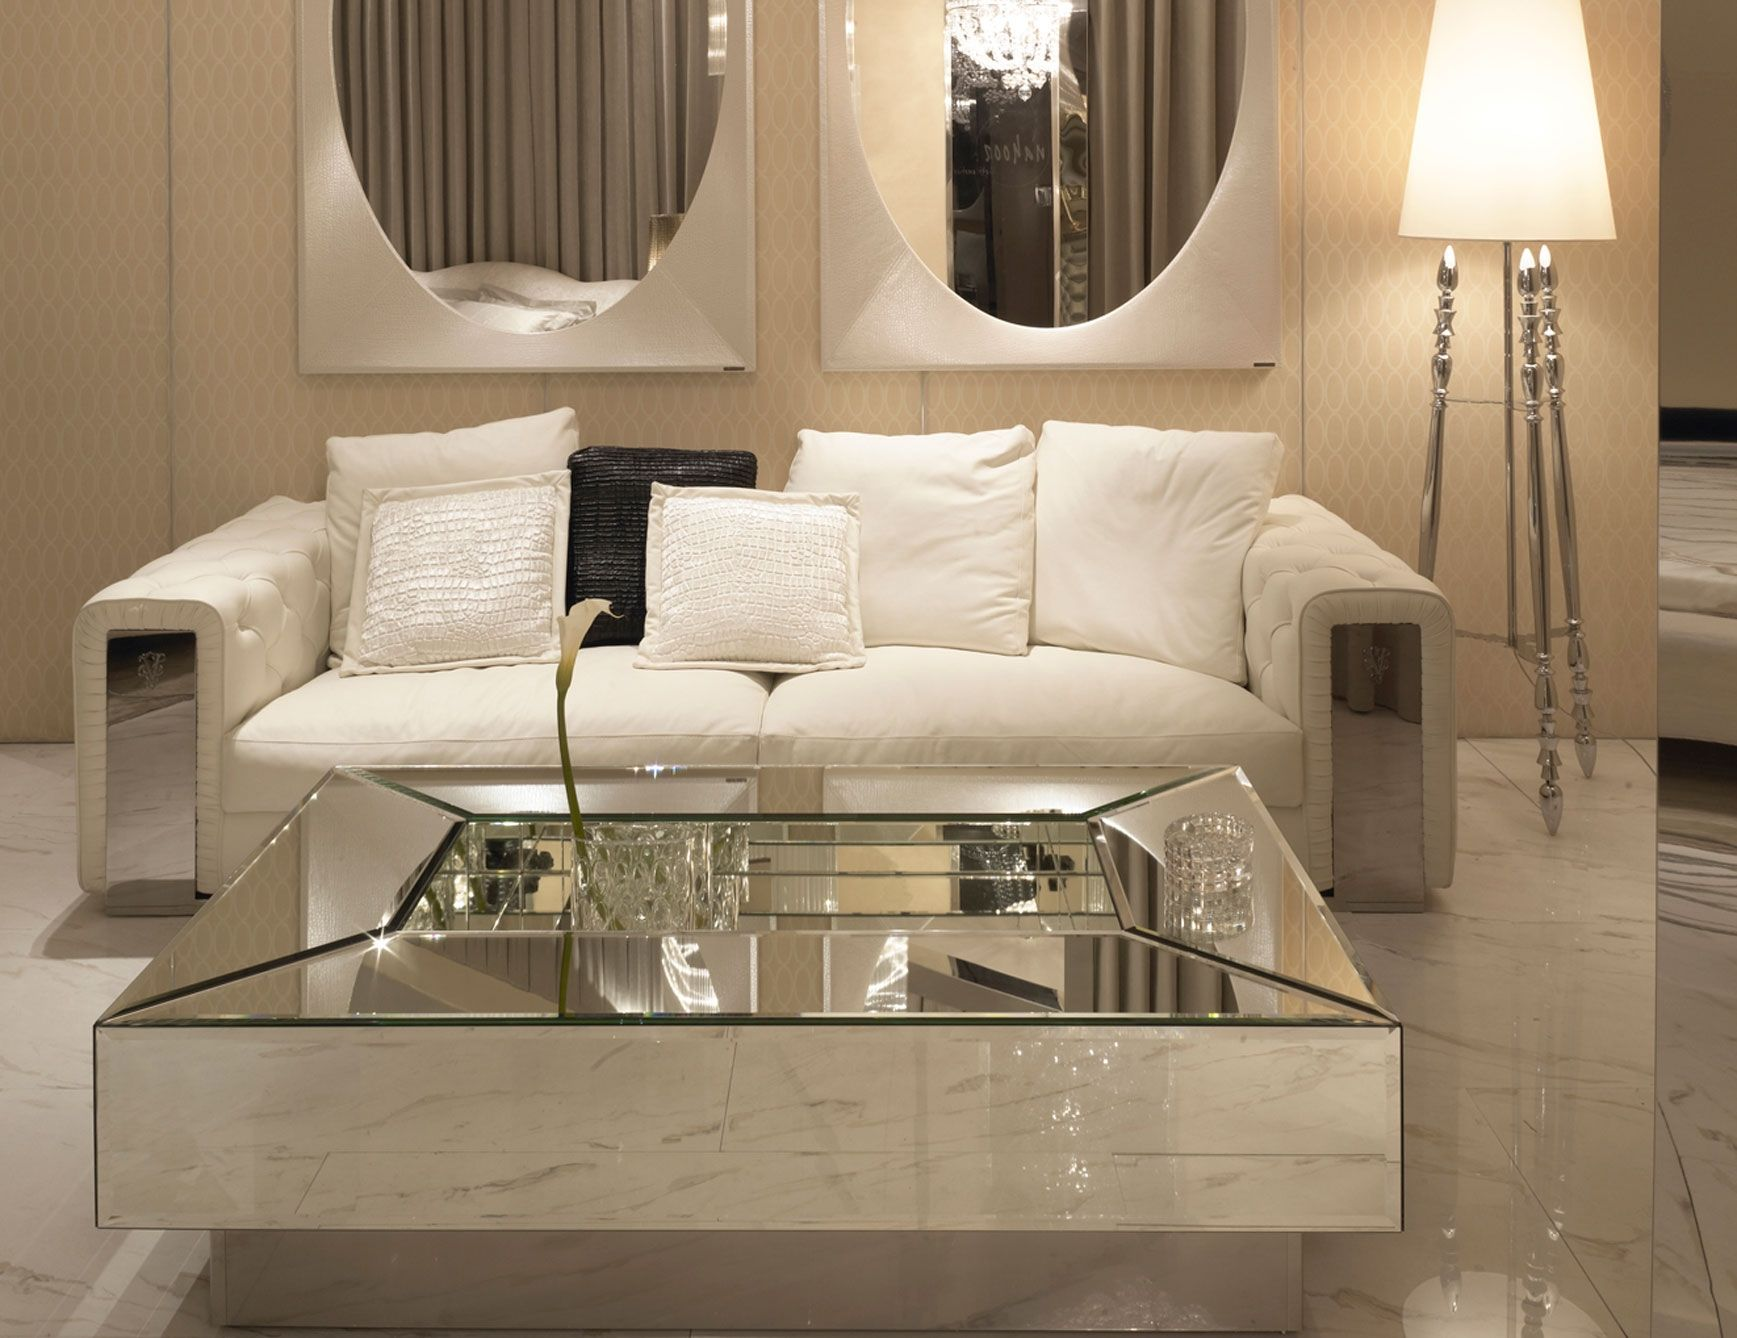 Mesmerizing Mirrored Coffee Table with Glass and Wood Combined ...